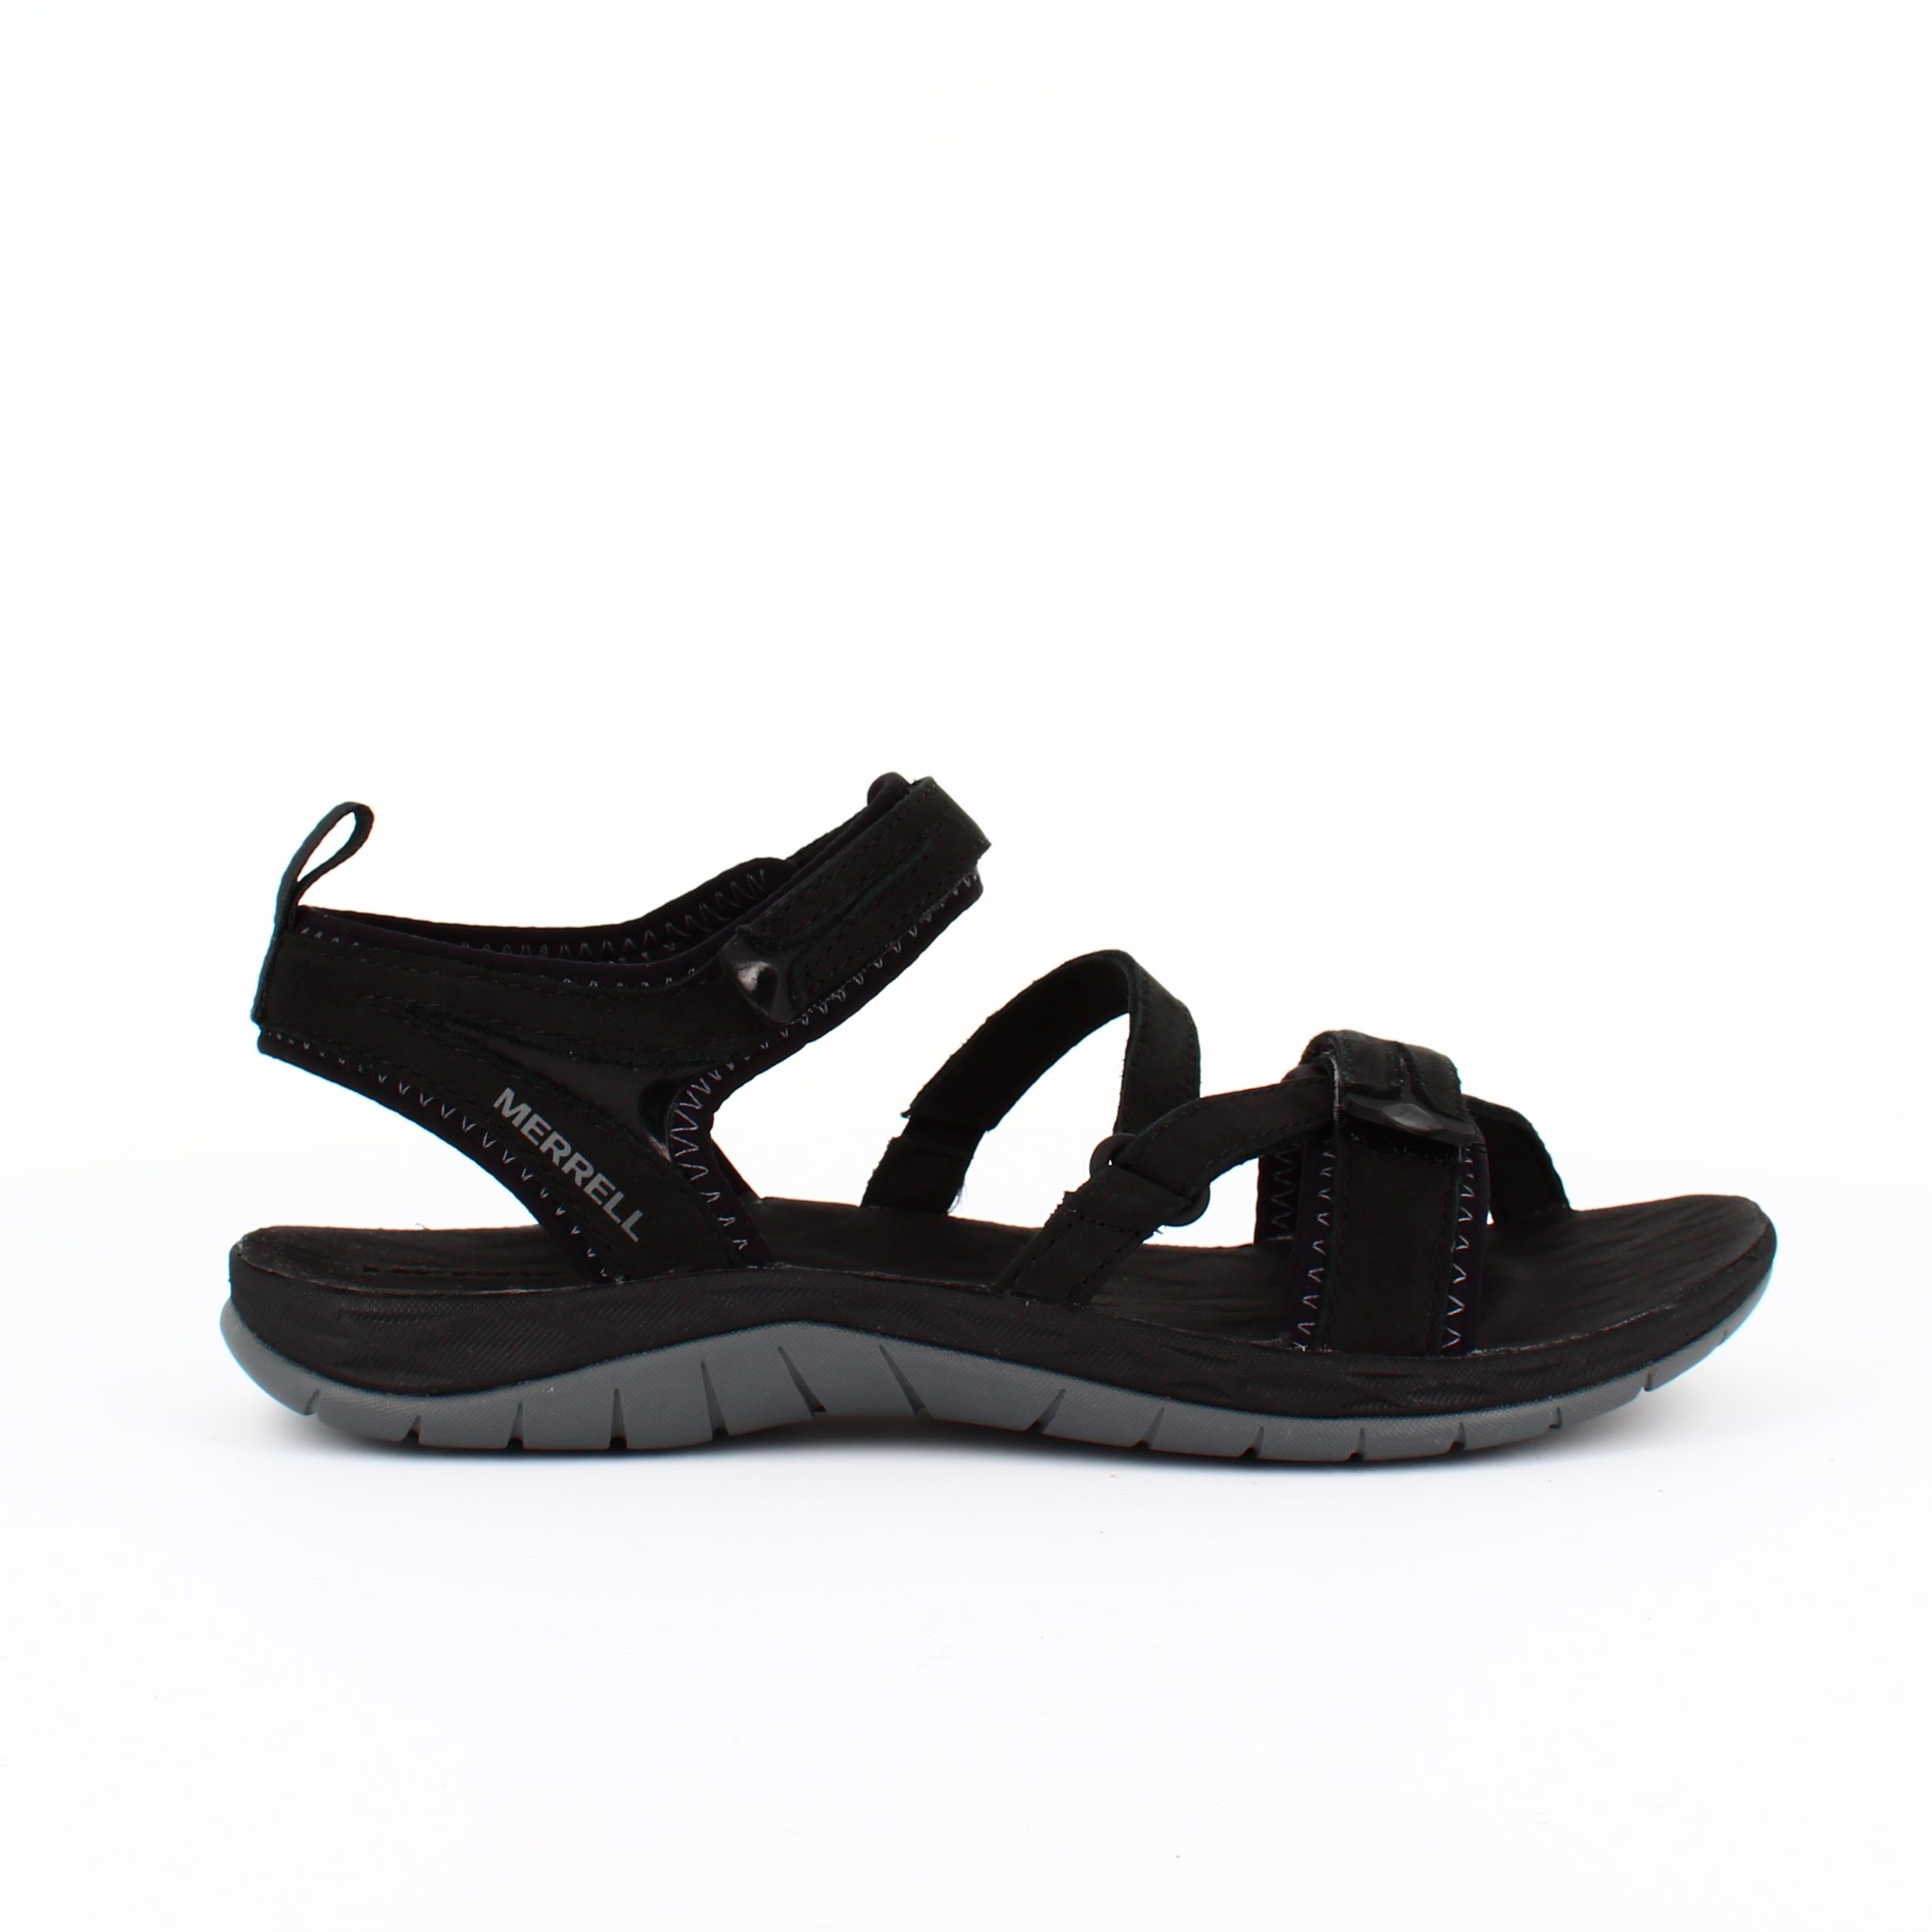 Image of   Sort sporty sandal fra Merrell - 40